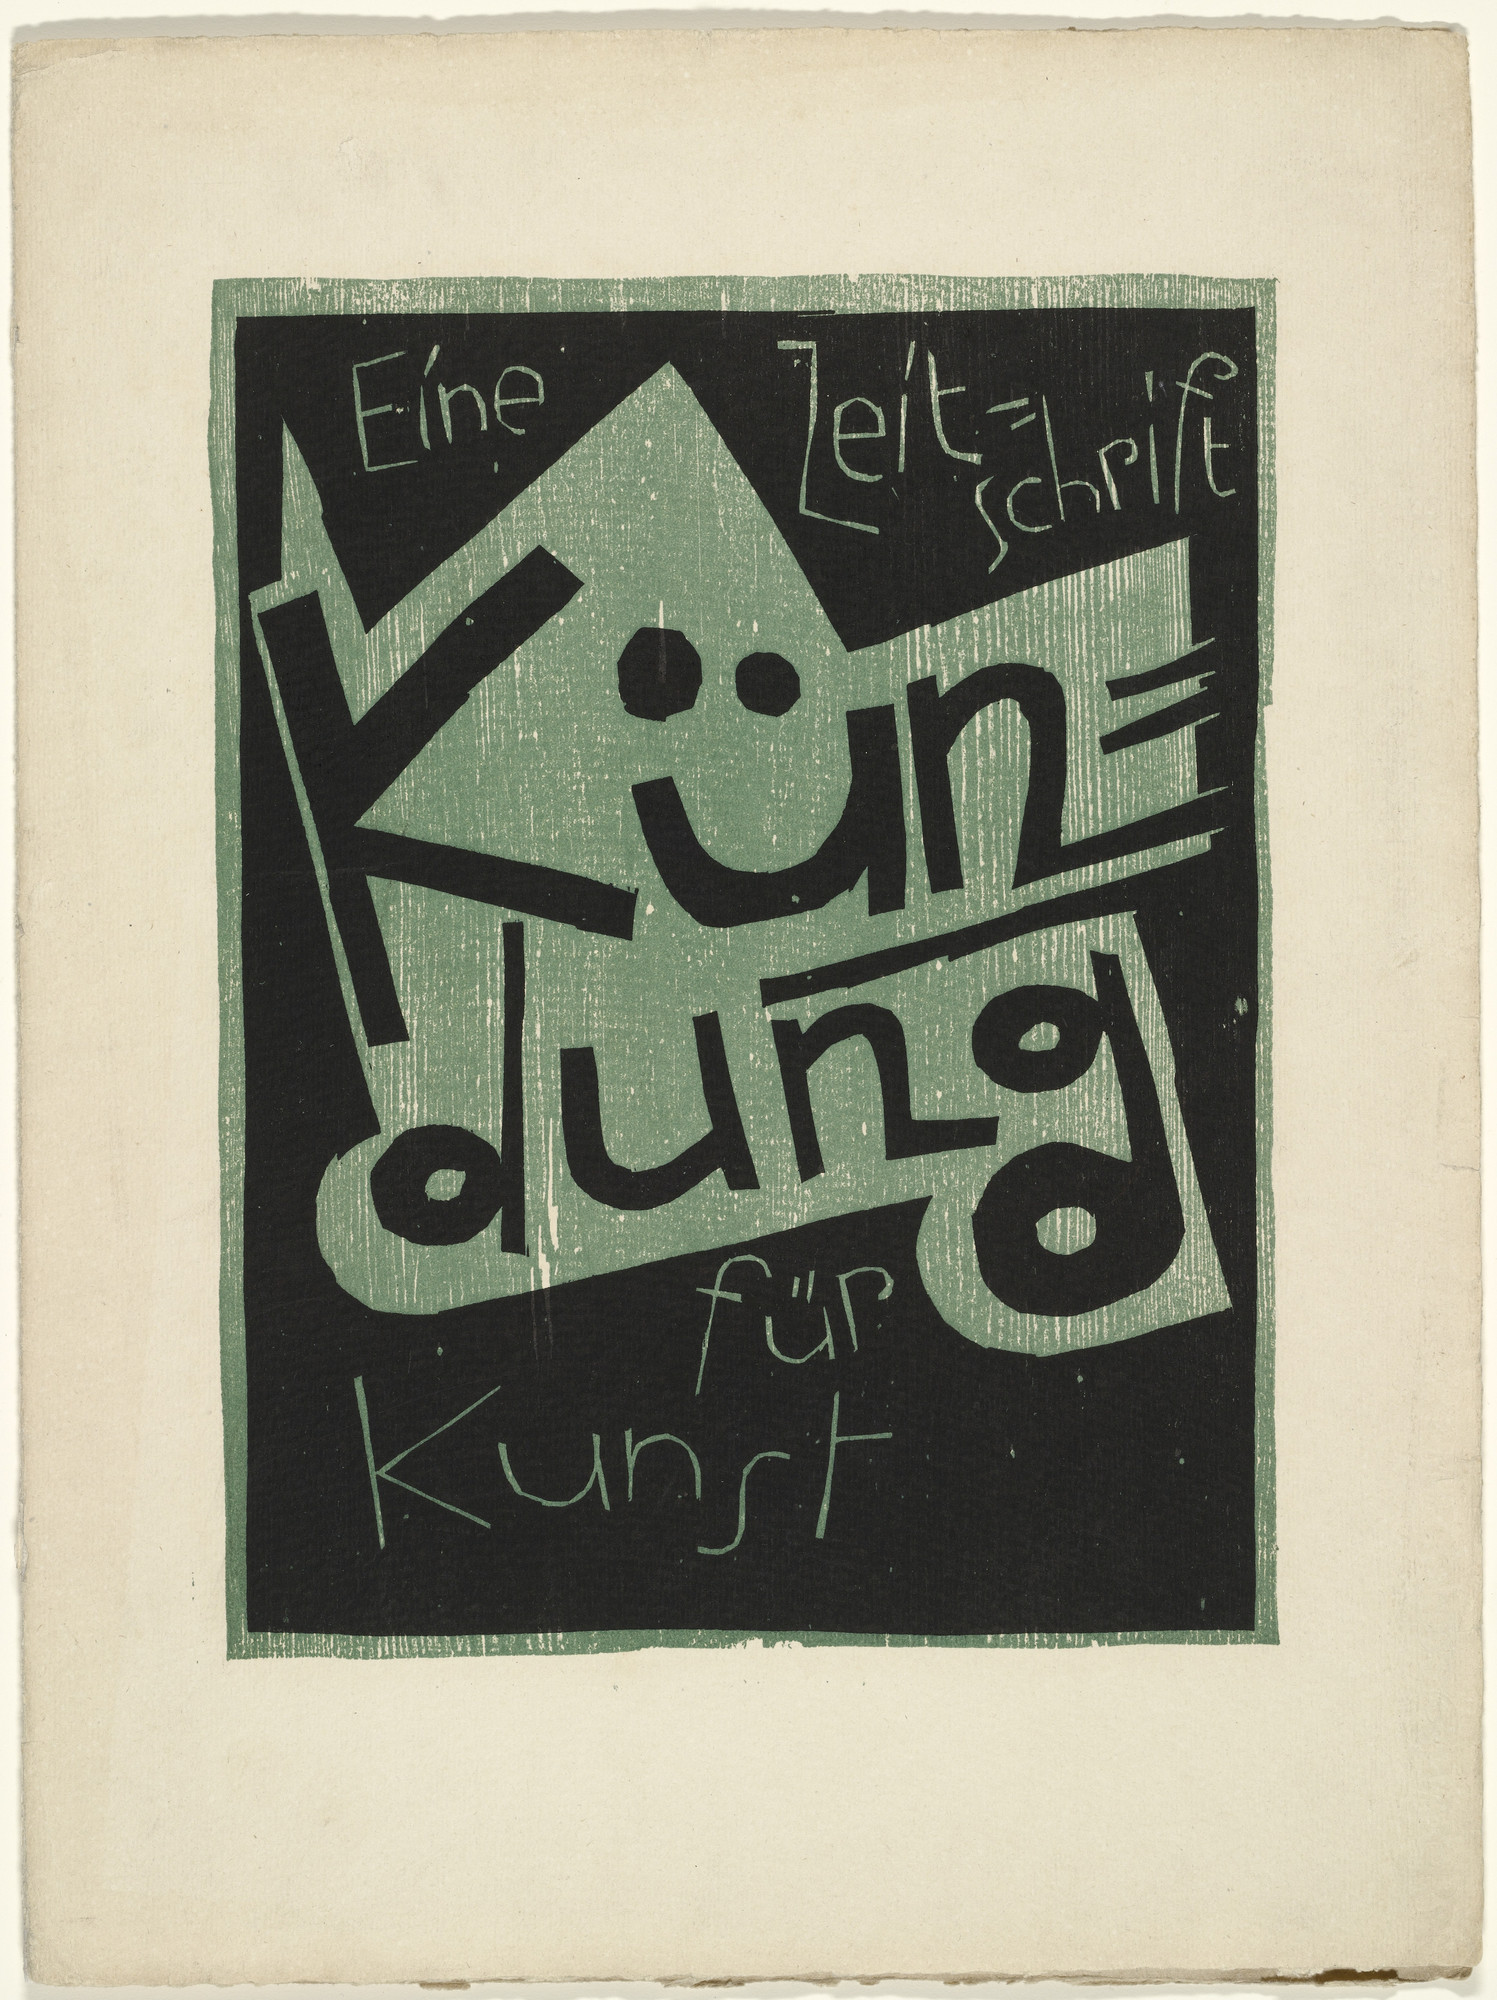 Karl Schmidt-Rottluff. Cover from the periodical Kündung, vol. 1, no. 3 (March 1921). 1921 (executed 1920)